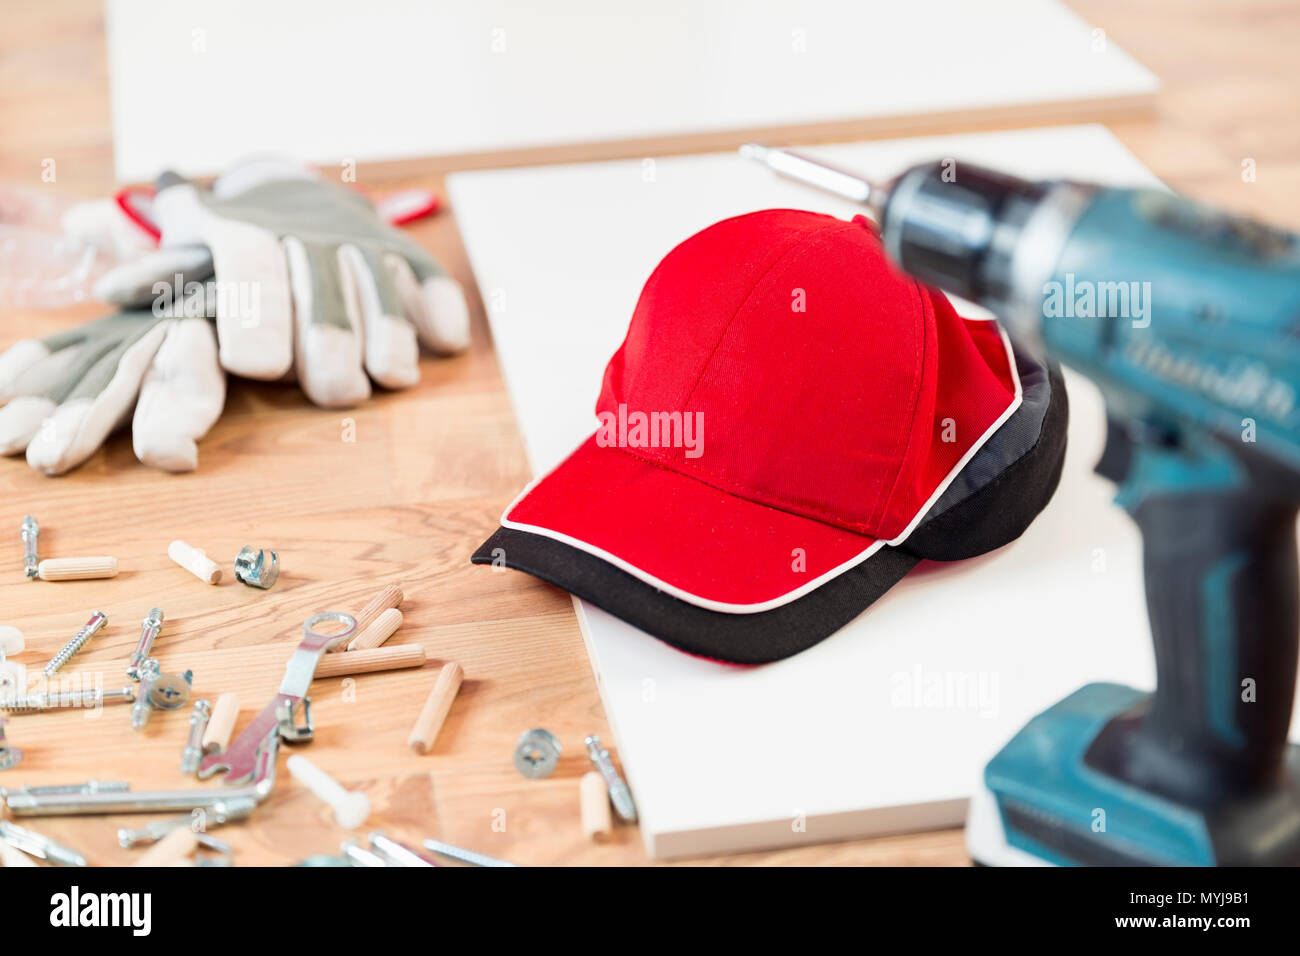 Furniture assembly parts and tools for self assembly furniture, on the floor - Stock Image